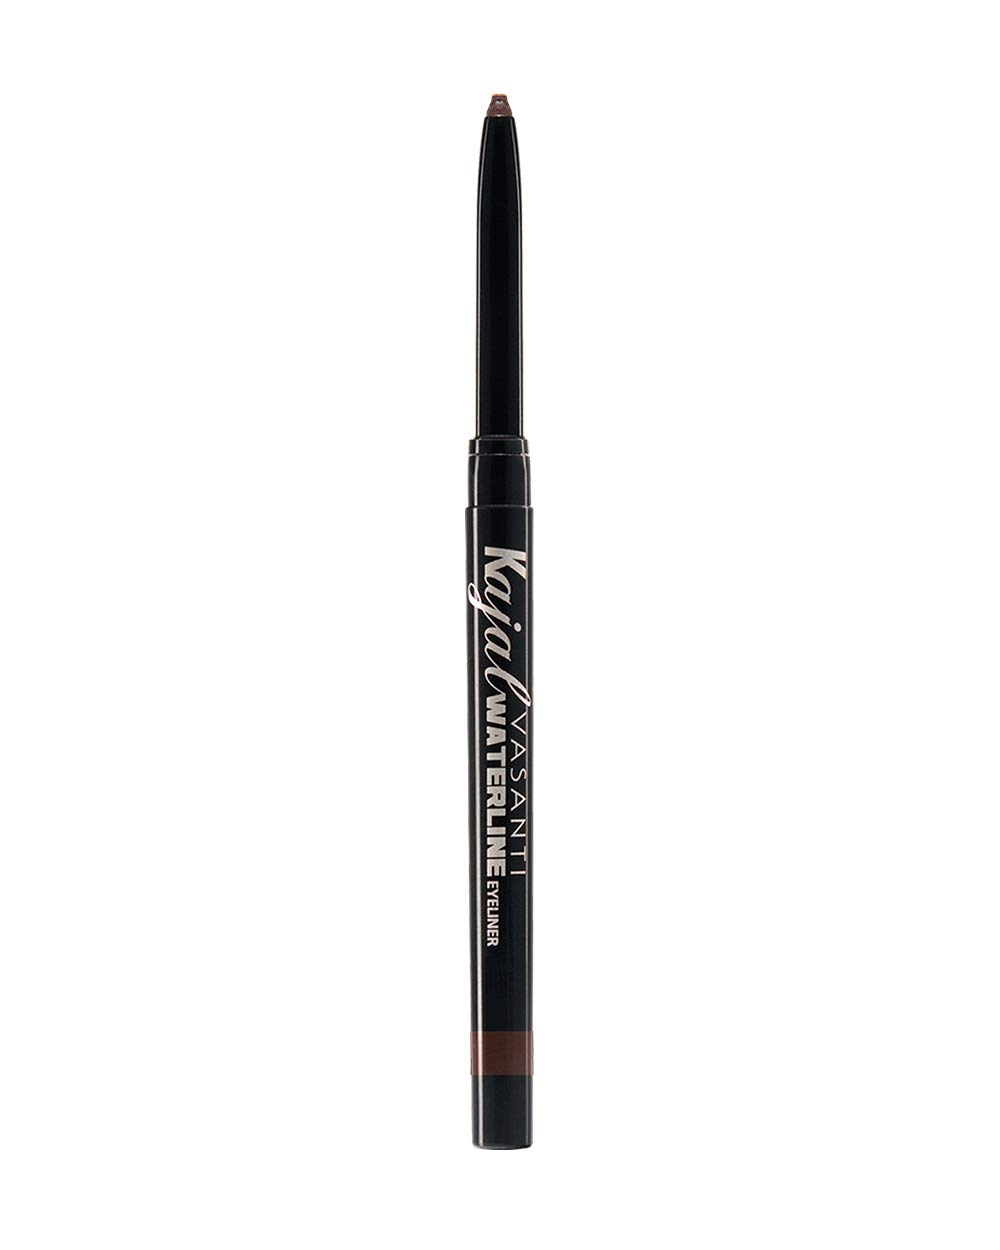 Kajal Waterline Eyeliner Pencil - (Hazel Brown)